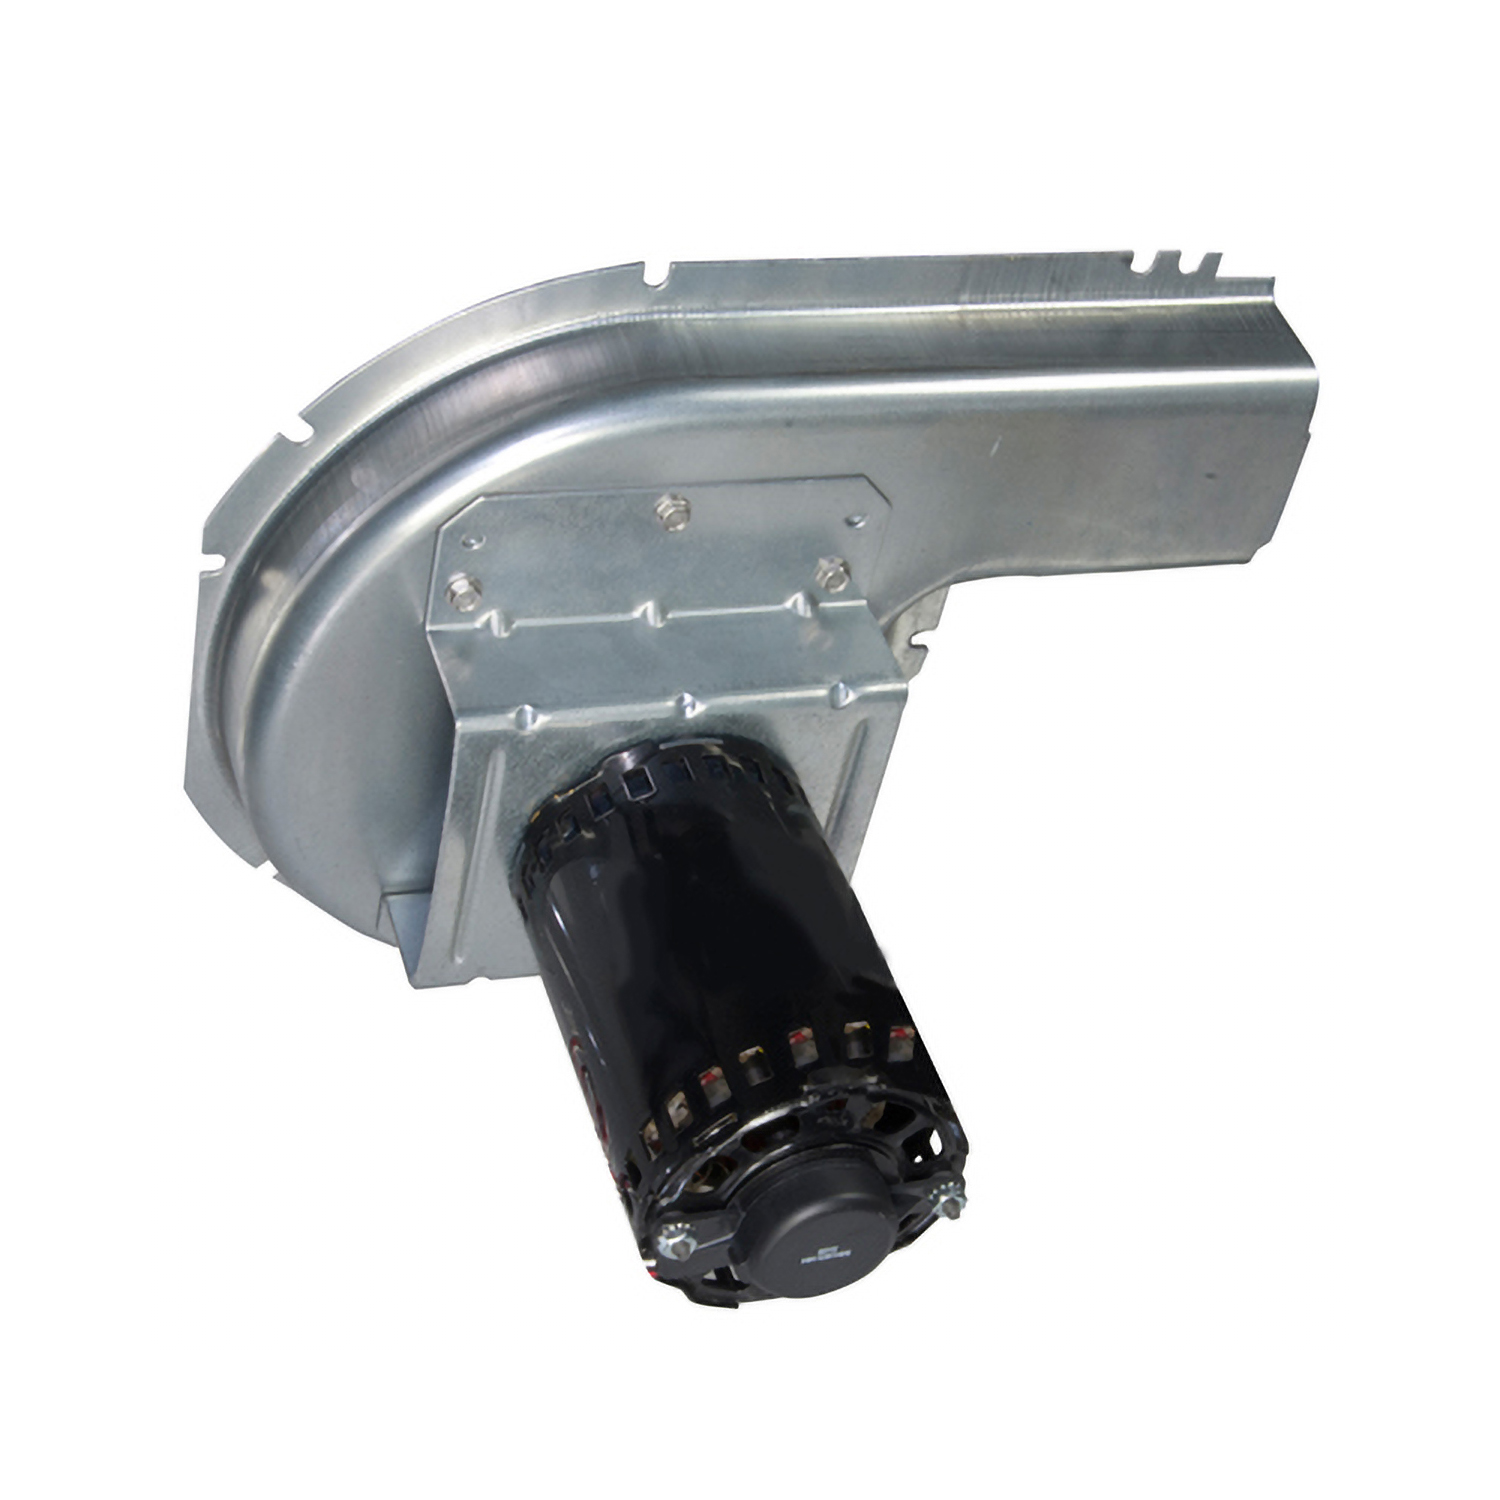 1/16 HP, Draft Inducer, 208-230 Volt, 3450 RPM, Replaces Carrier